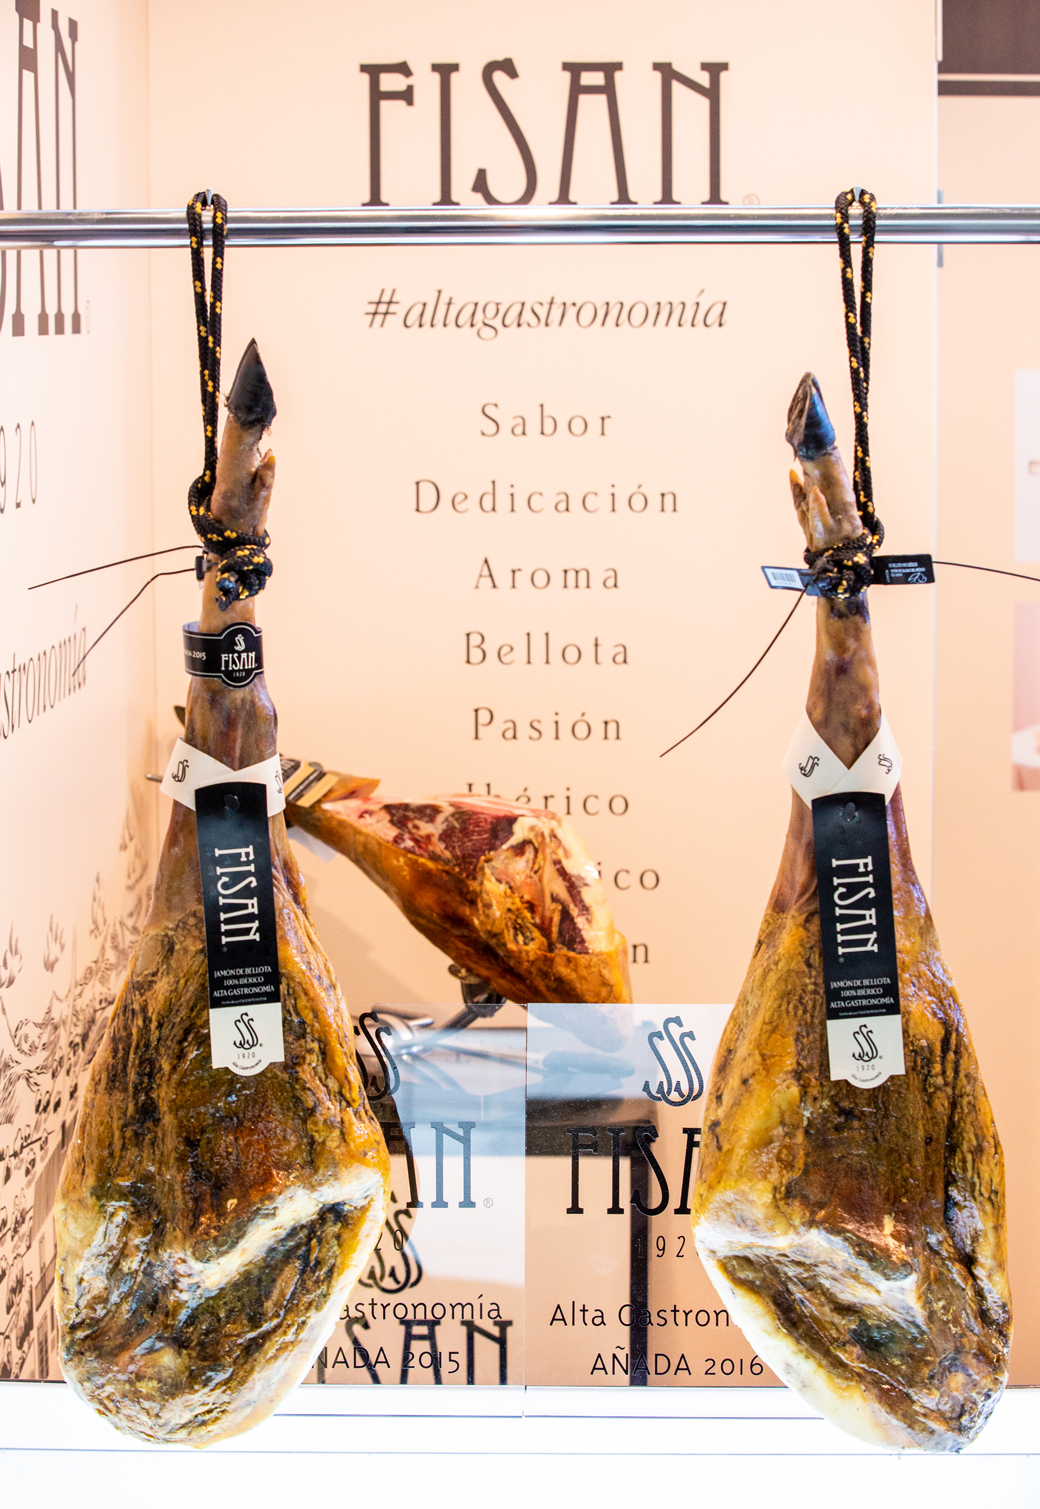 FISAN FINE GASTRONOMY PRODUCTS AT MADRID FUSIÓN 2019